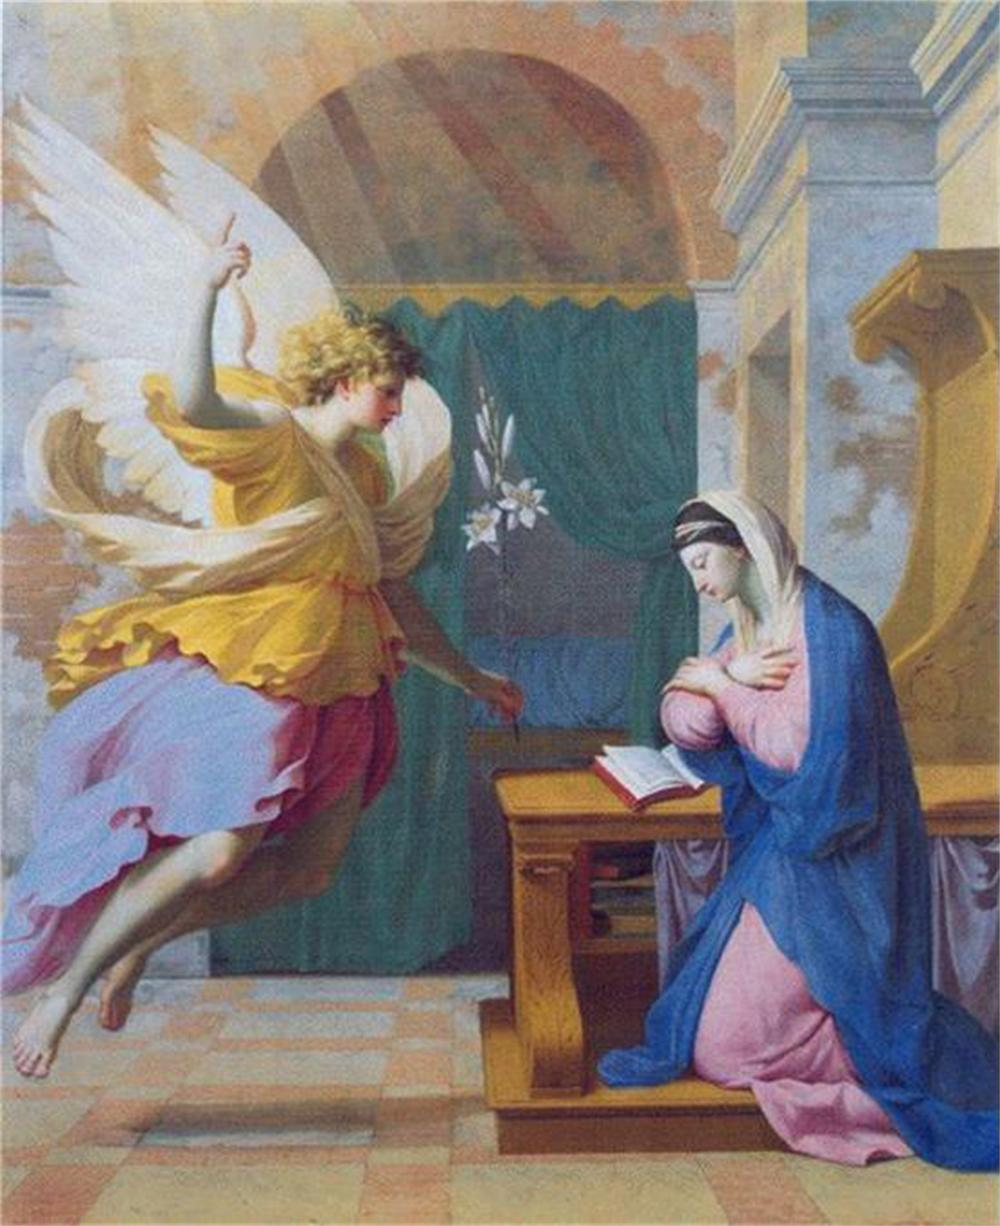 Annunciation of Our Lord The Birth of Jesus Foretold